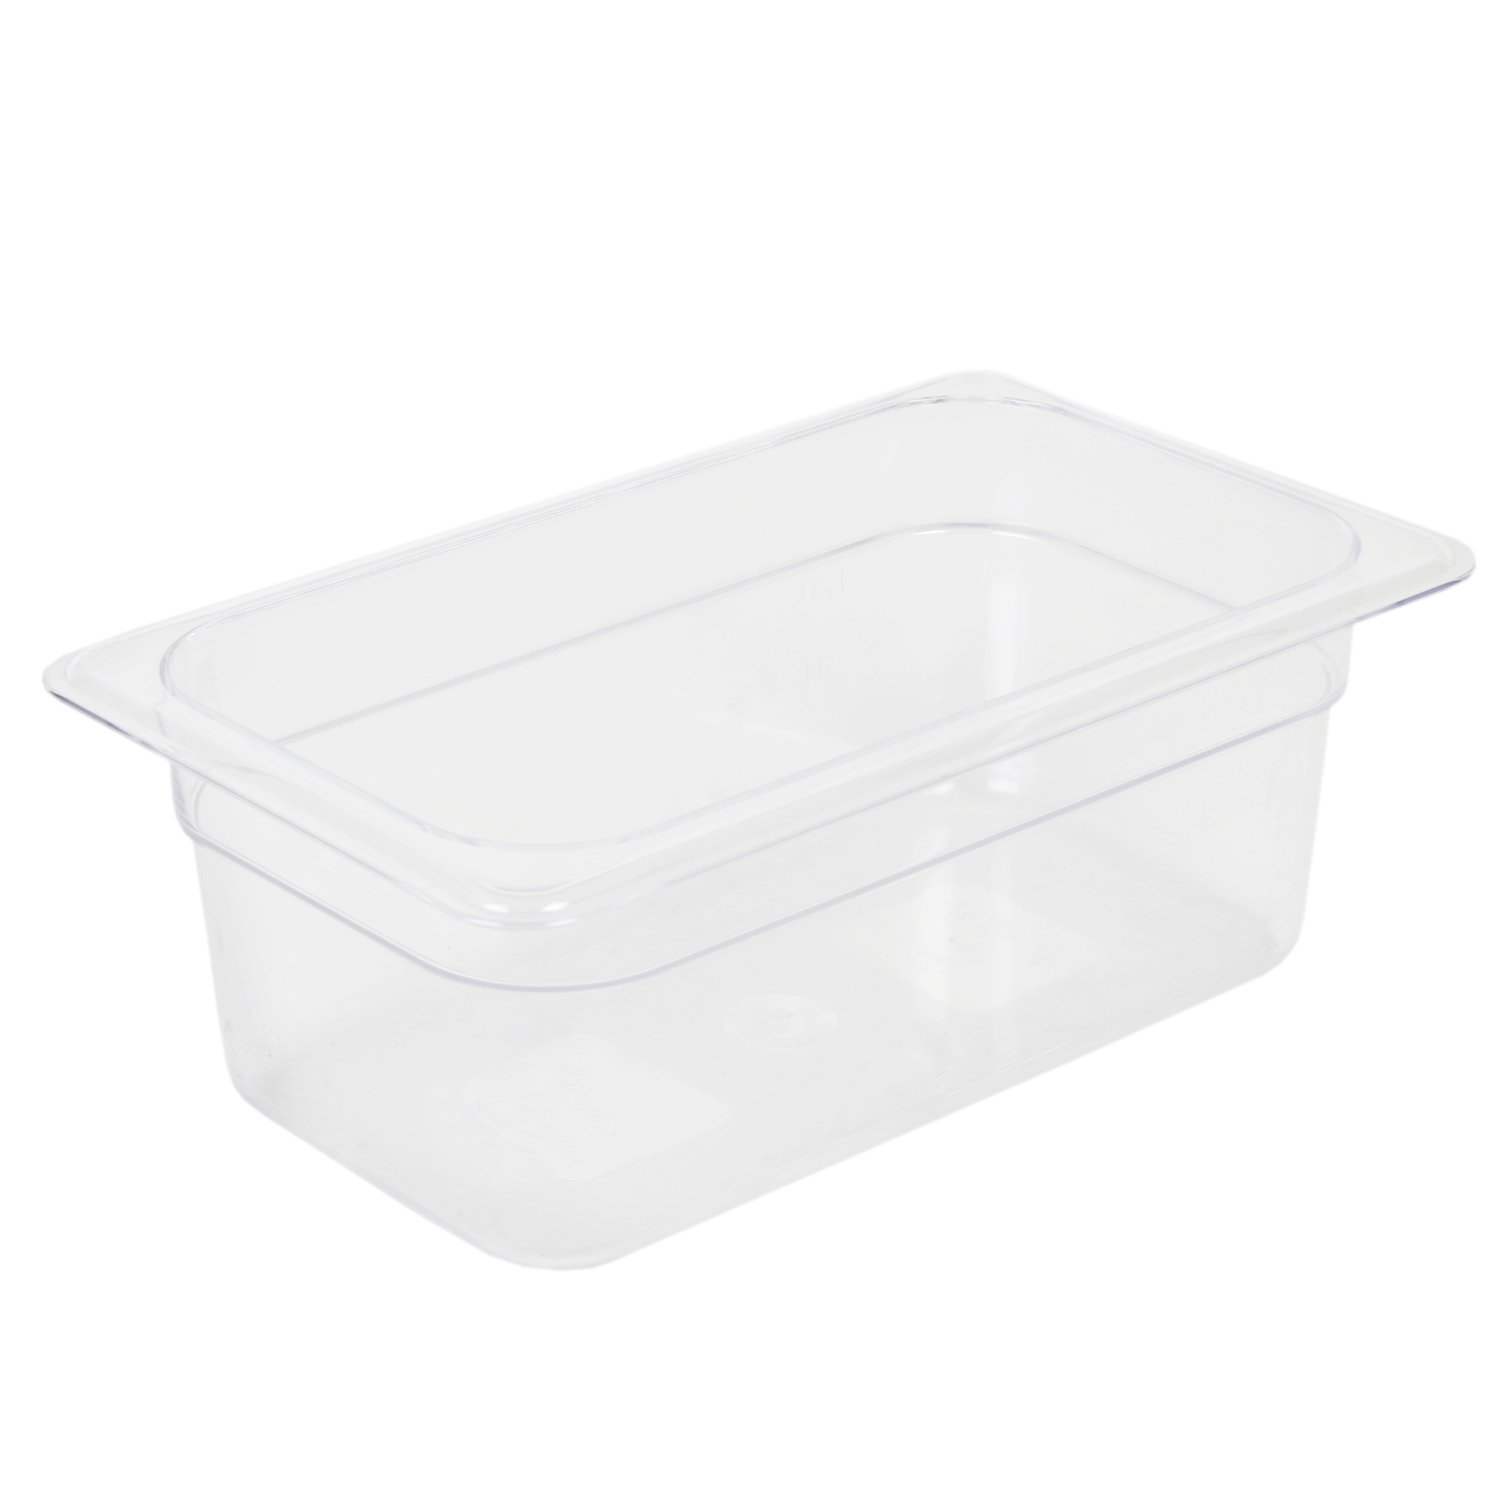 Excellante 849851007185 Deep Polycarbonate Food Pan, 4